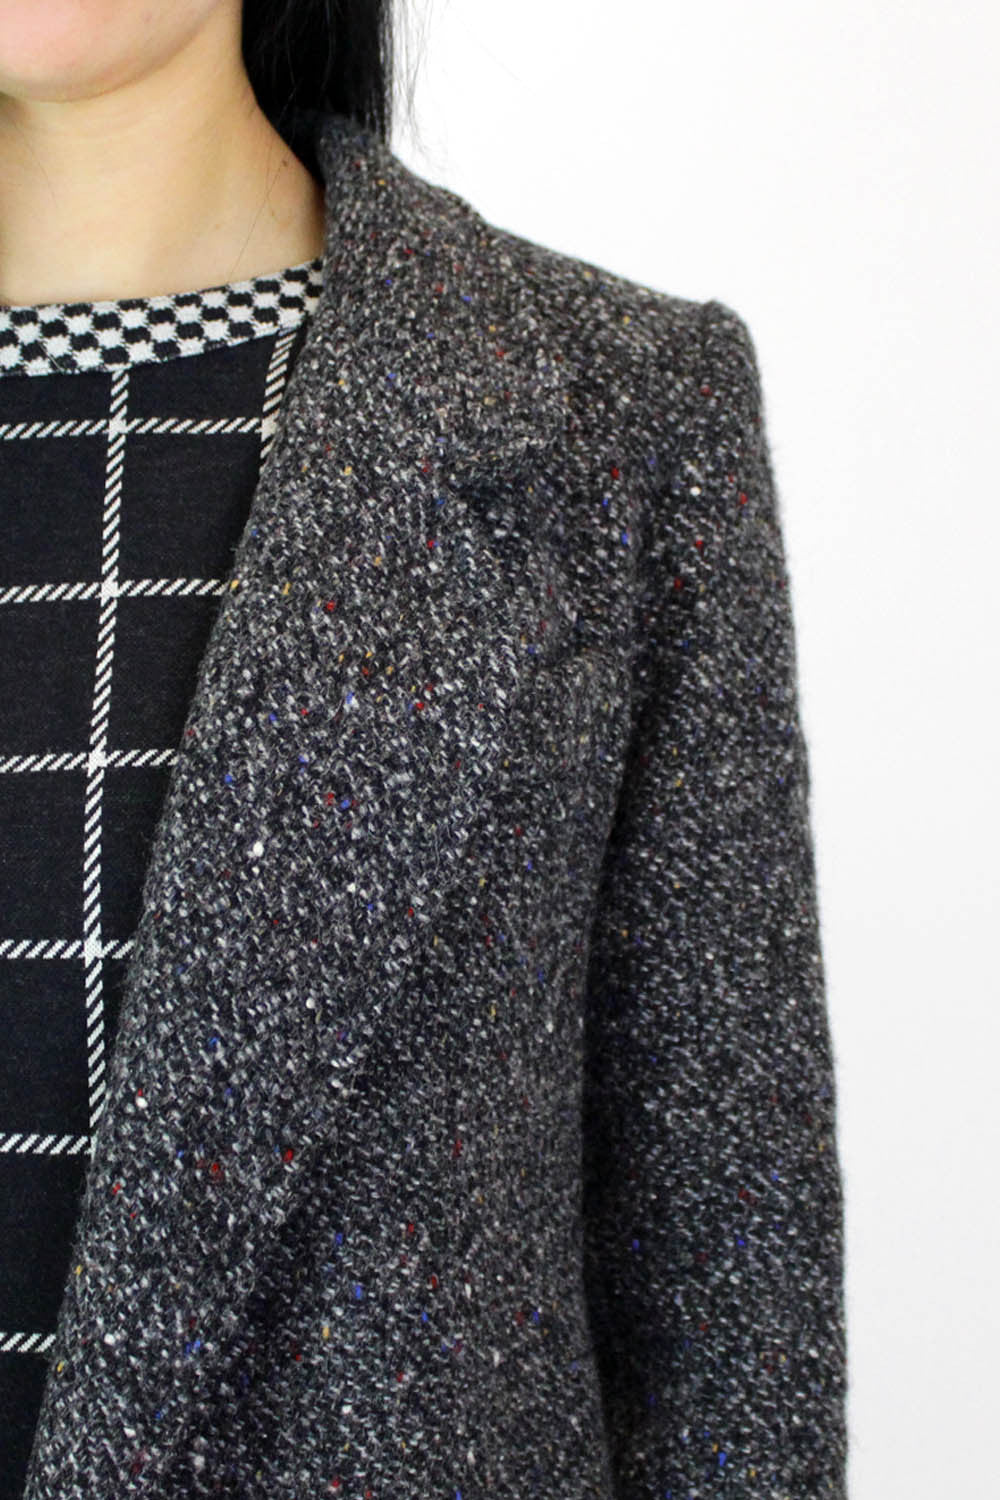 vintage wool coat detail